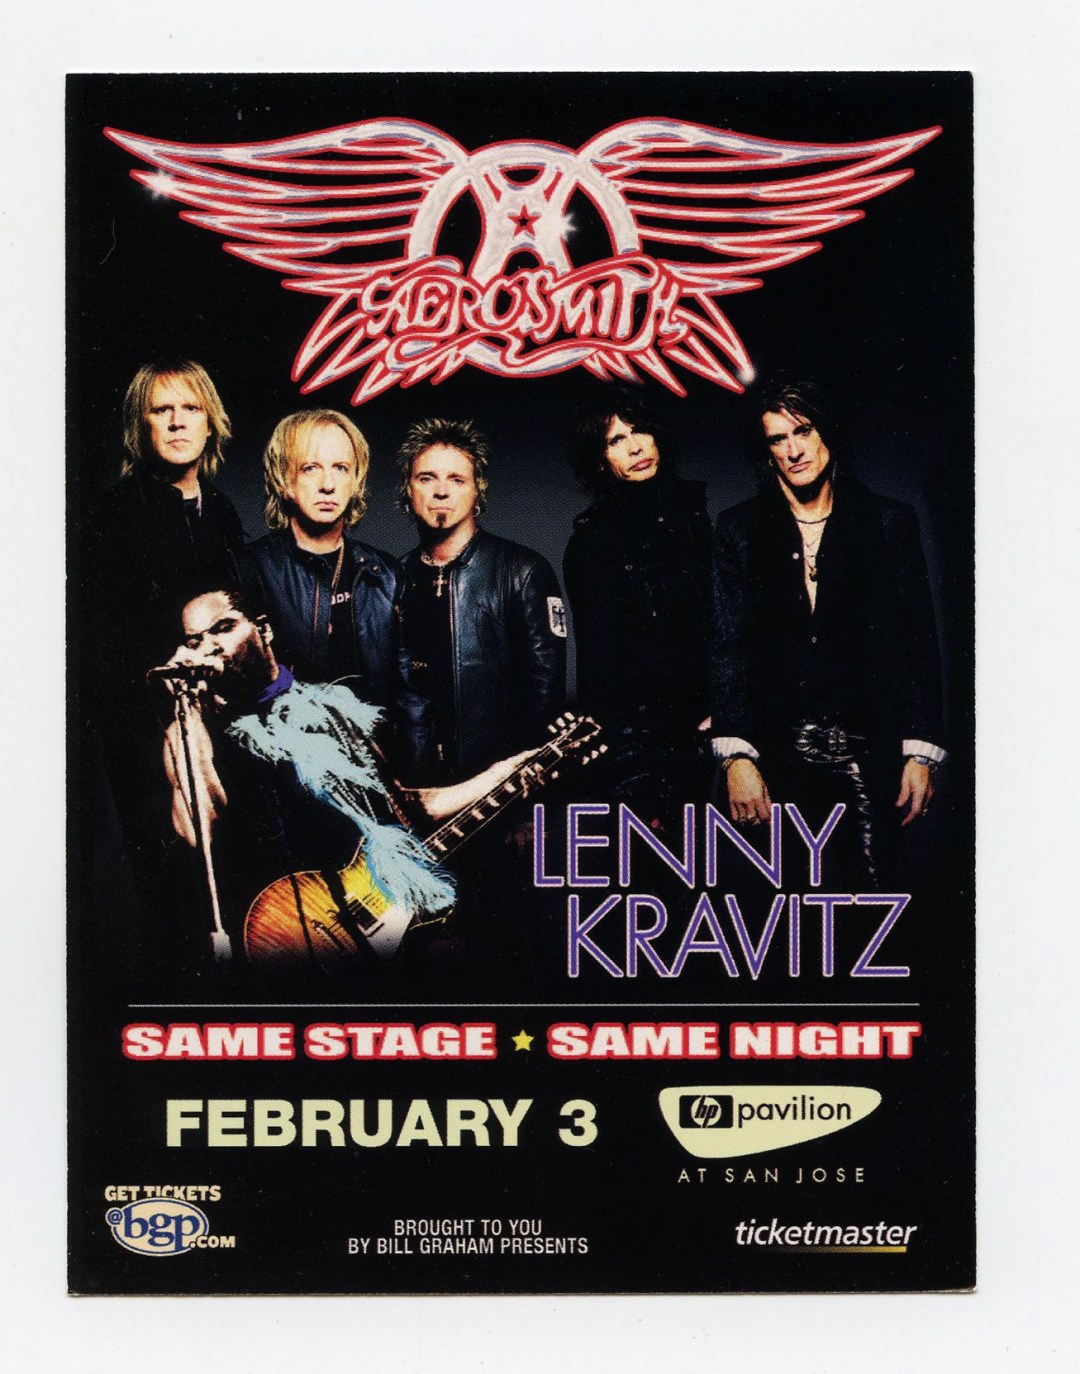 Aerosmith Handbill 2006 Feb 8 San Jose Oakland 2 sided 2 5/8 x 4 15/16